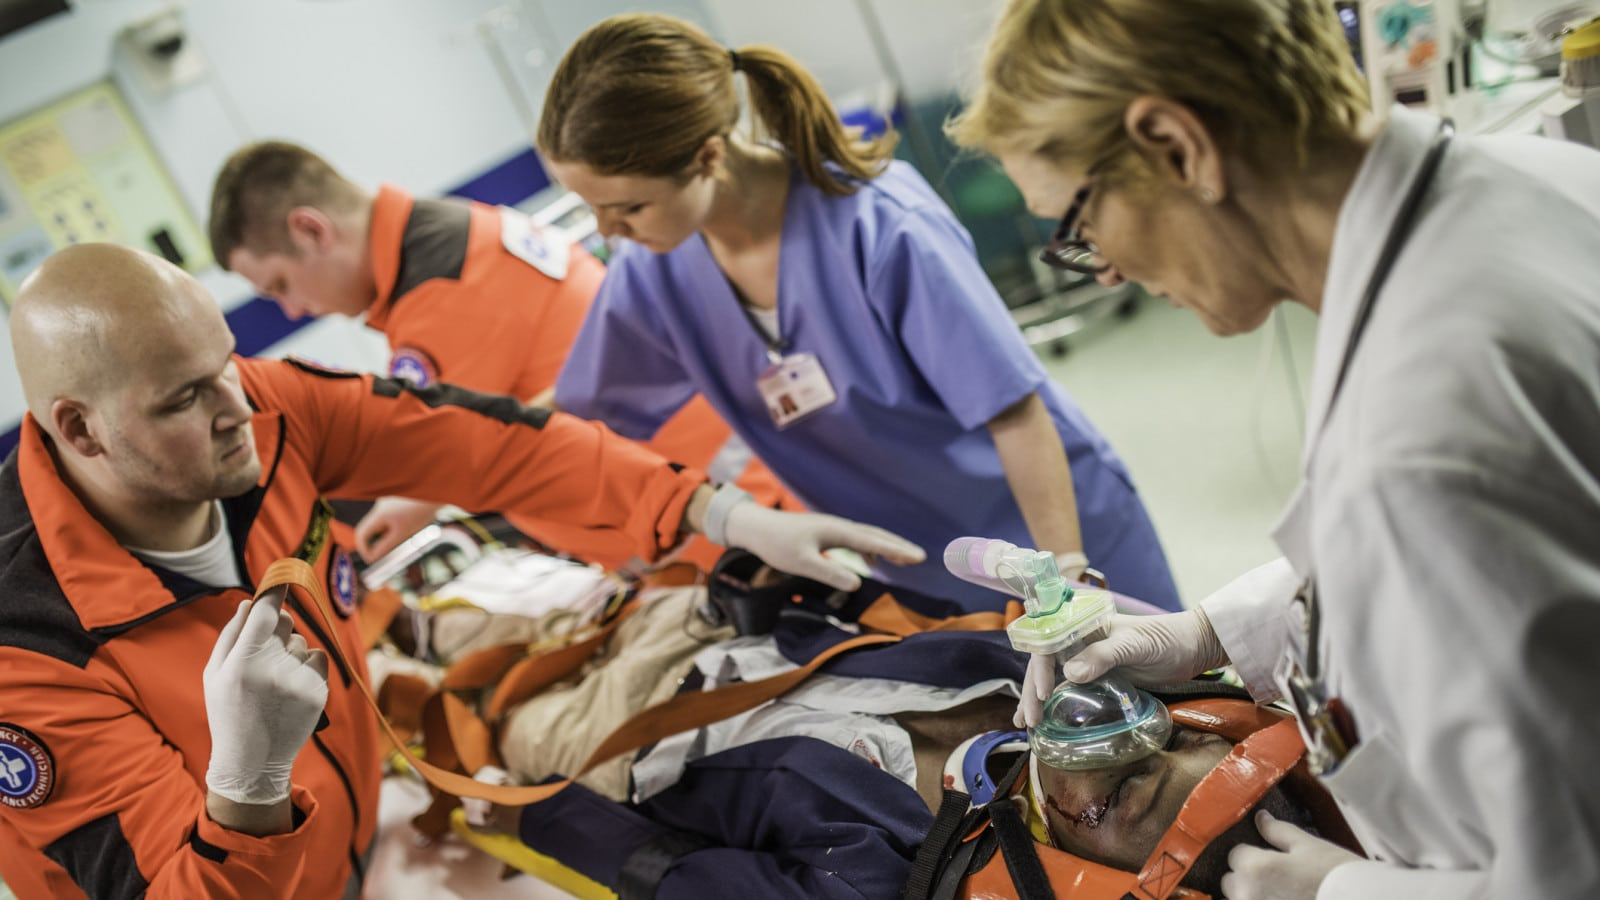 Paramedics Treating Patient Stock Photo